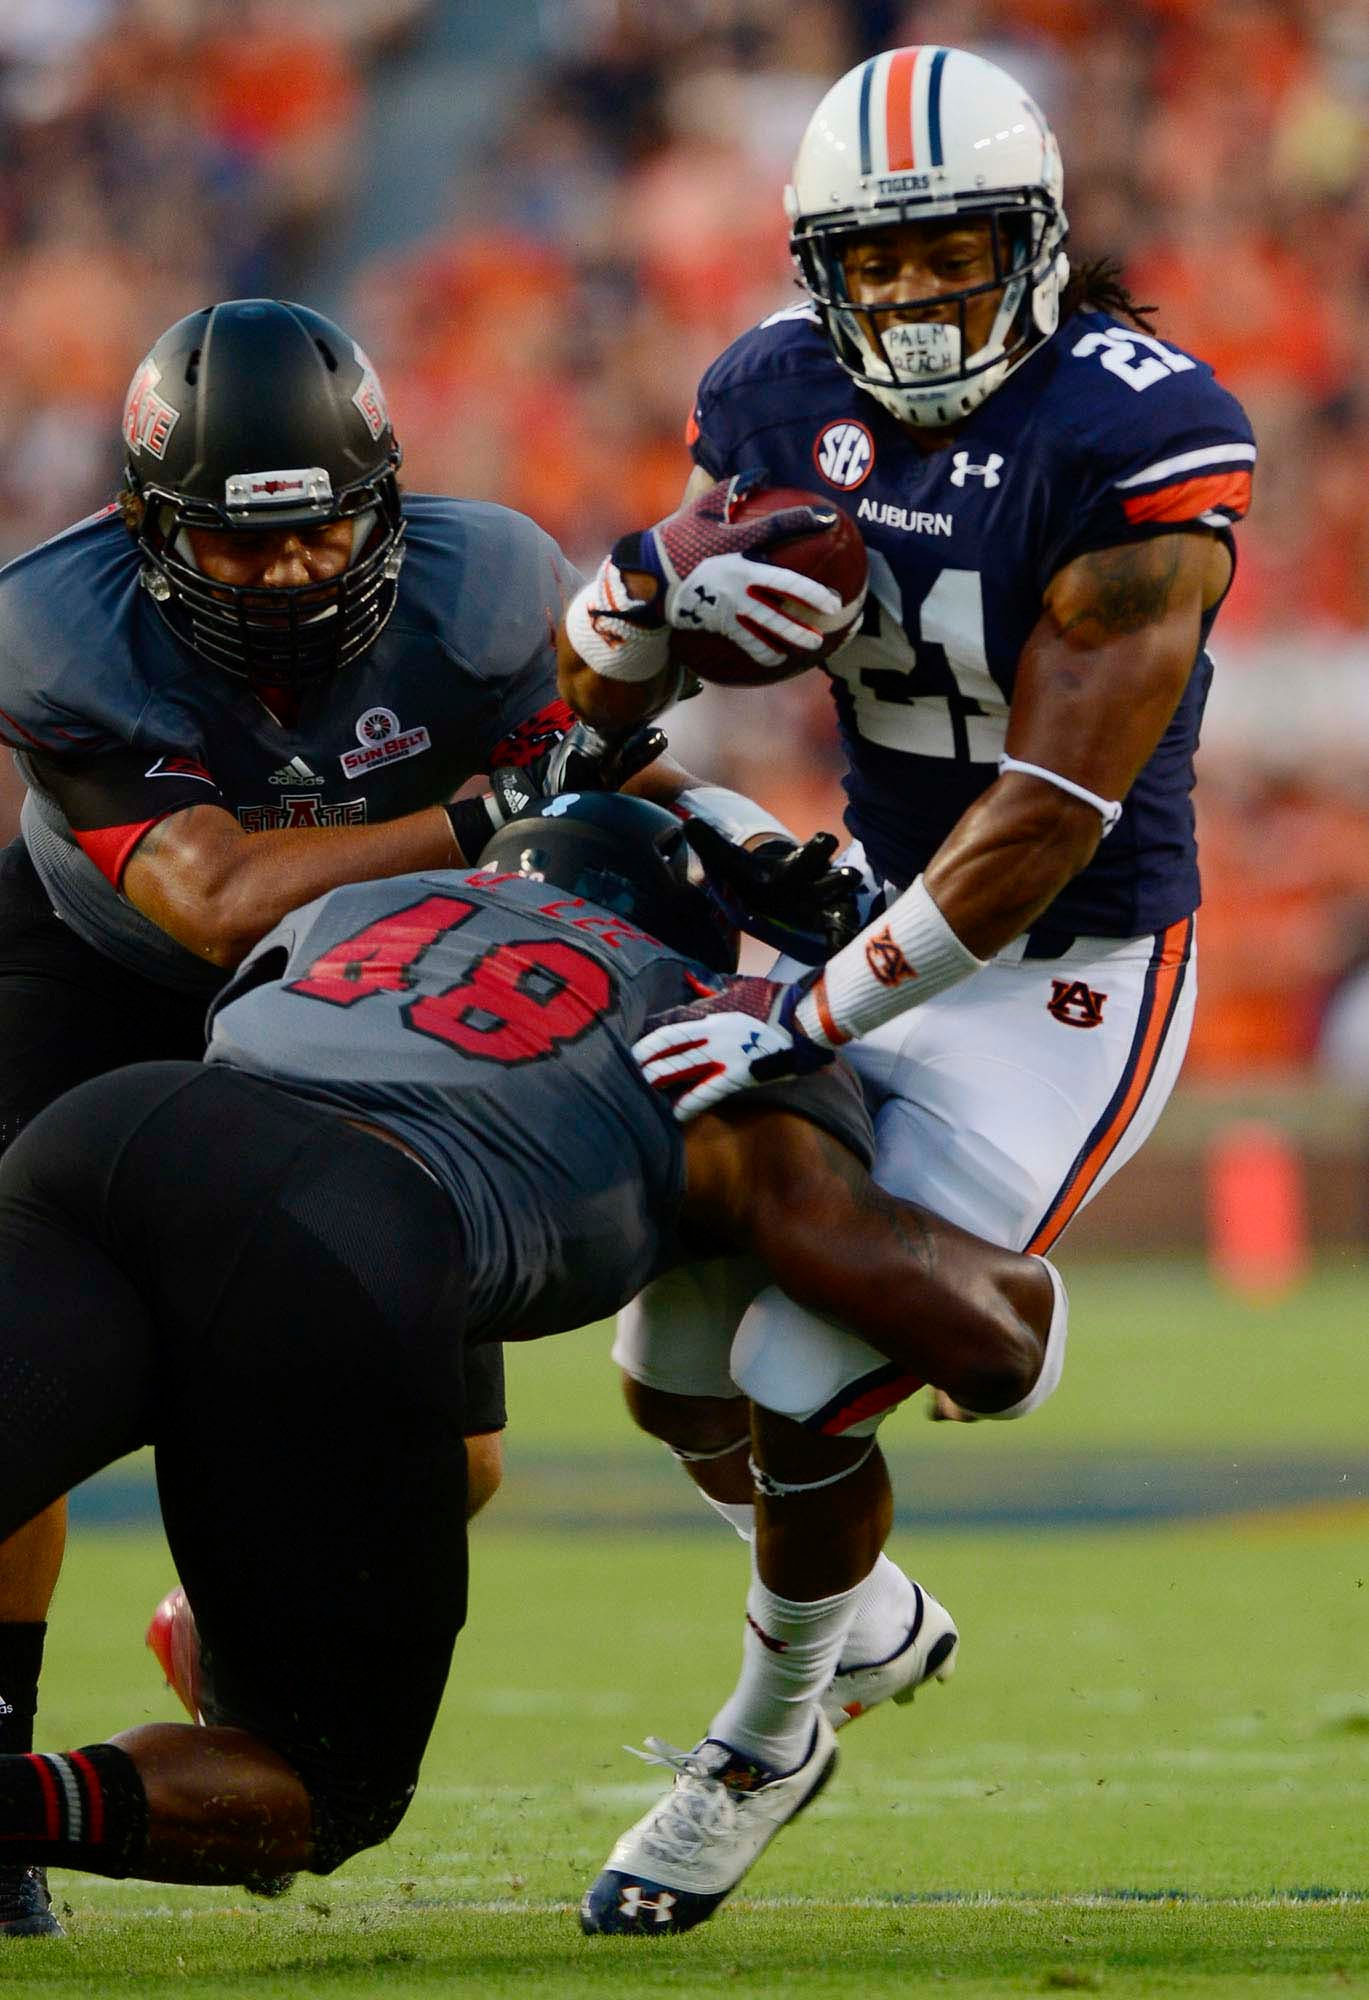 Auburn running back Tre Mason picks up some of his 99 yards Saturday against Arkansas State. (Source: Todd Van Emst/Auburn University)